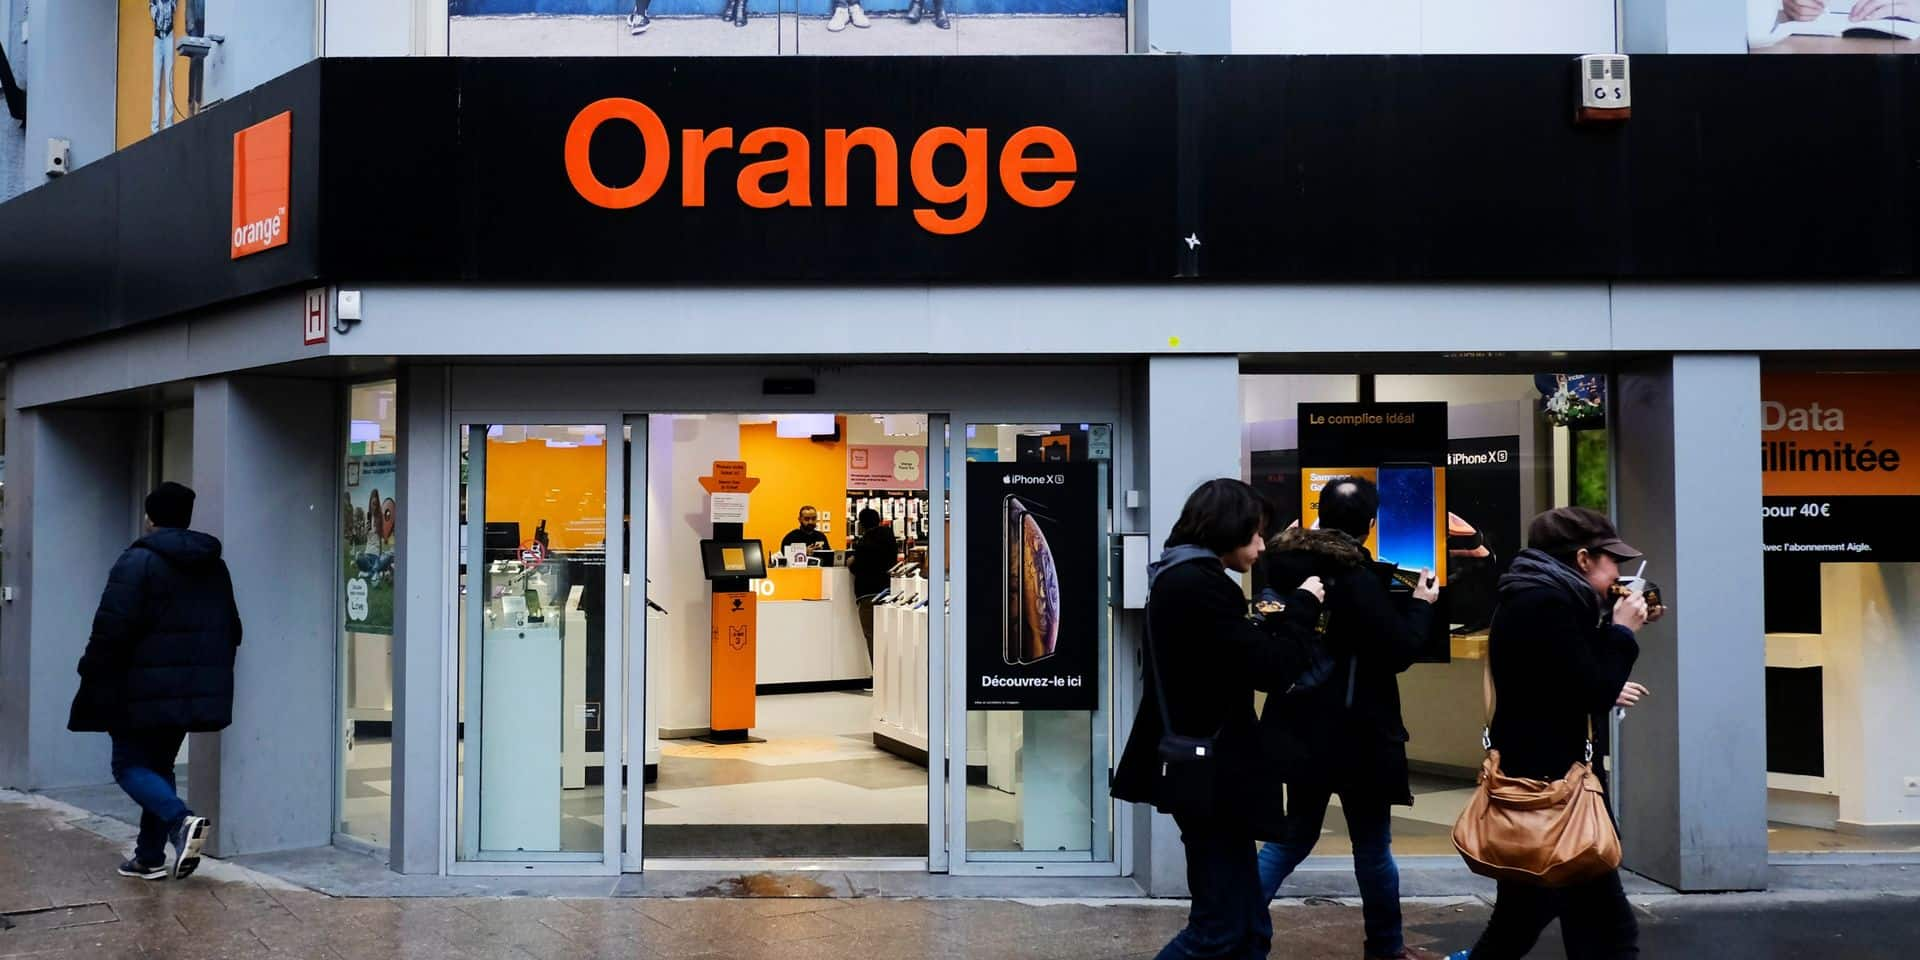 Rachat d'Orange Belgium: les actionnaires font face à la maison-mère Orange France.